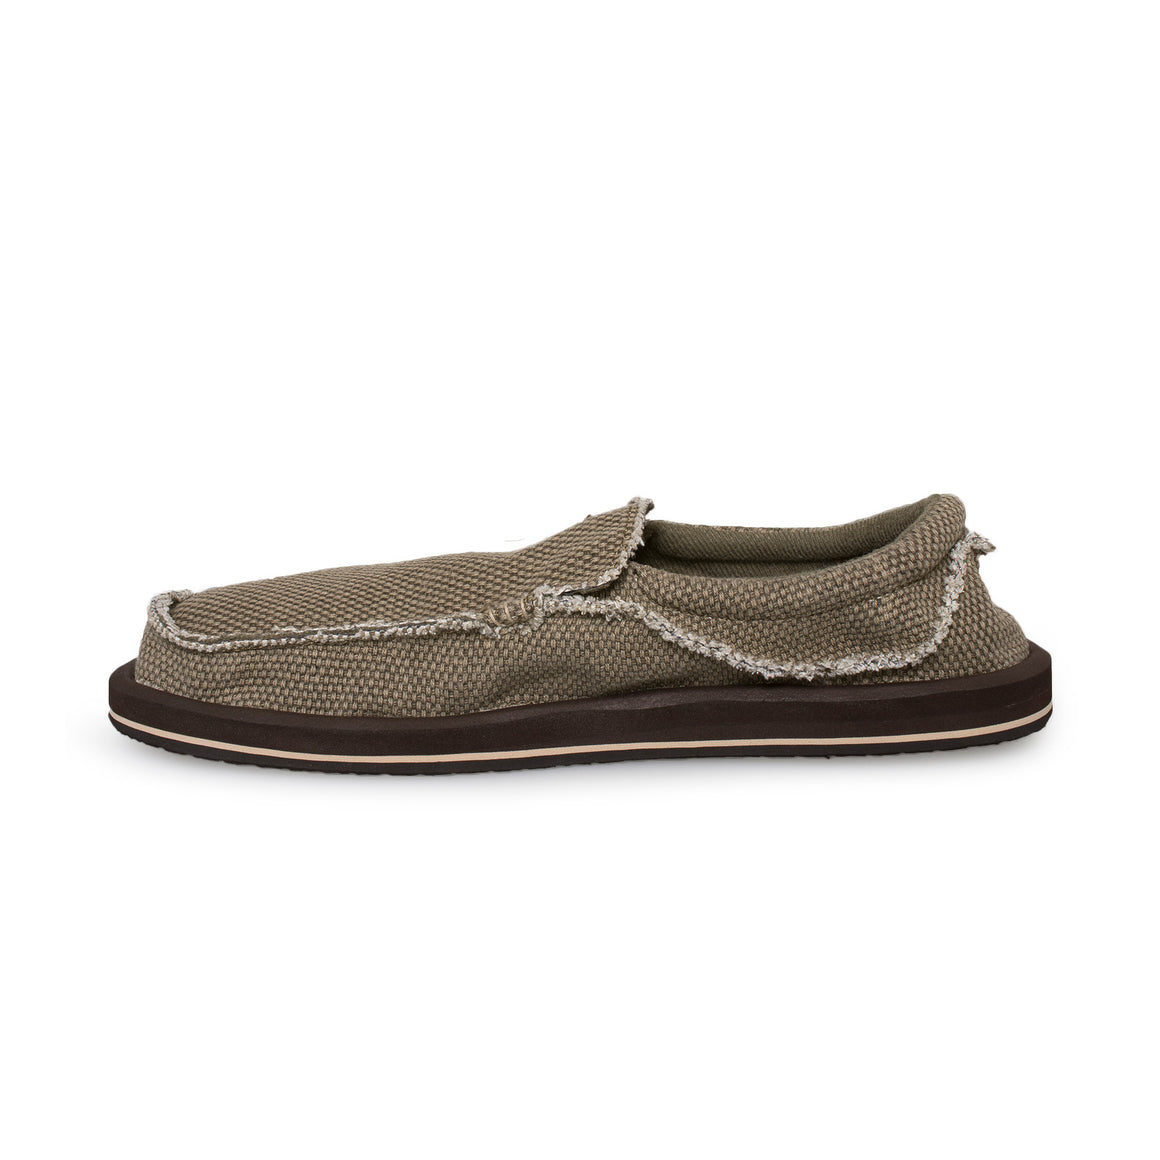 Sanuk Chiba Brown Shoes - Men's